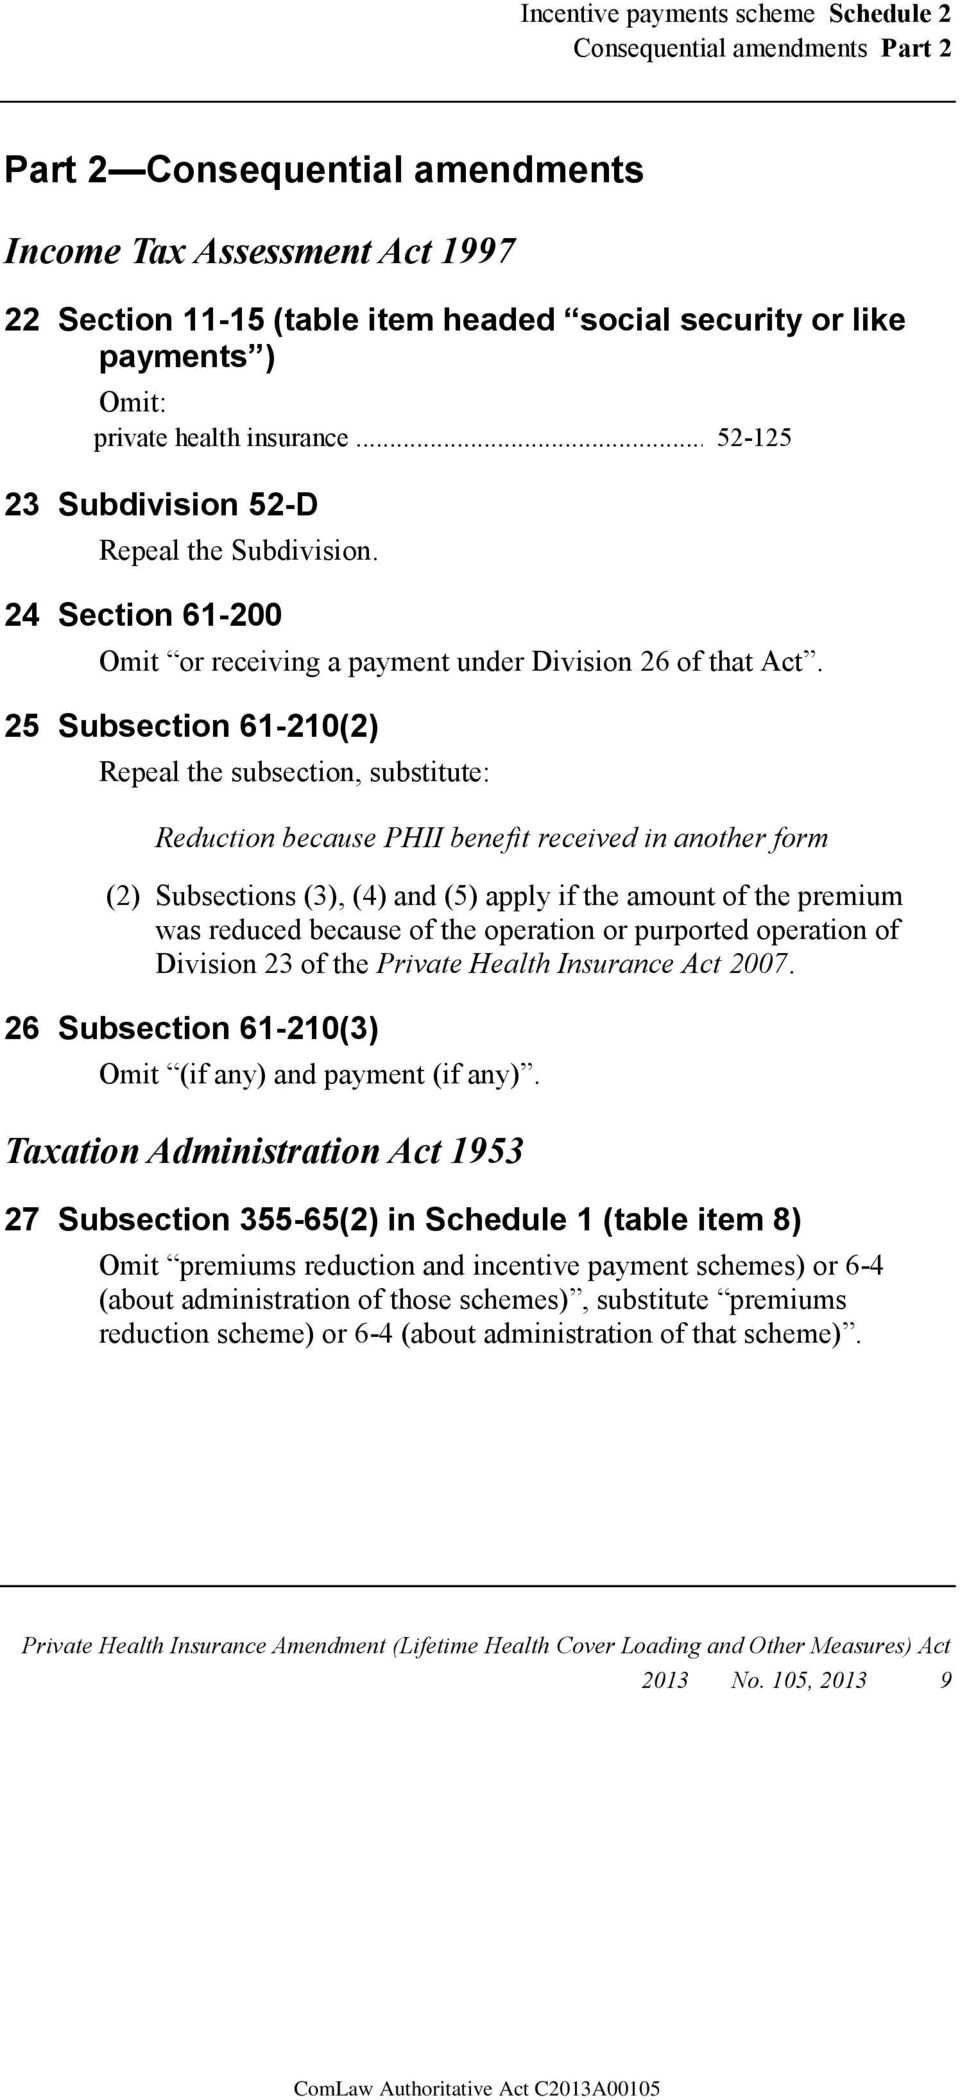 25 Subsection 61-210(2) Repeal the subsection, substitute: Reduction because PHII benefit received in another form (2) Subsections (3), (4) and (5) apply if the amount of the premium was reduced